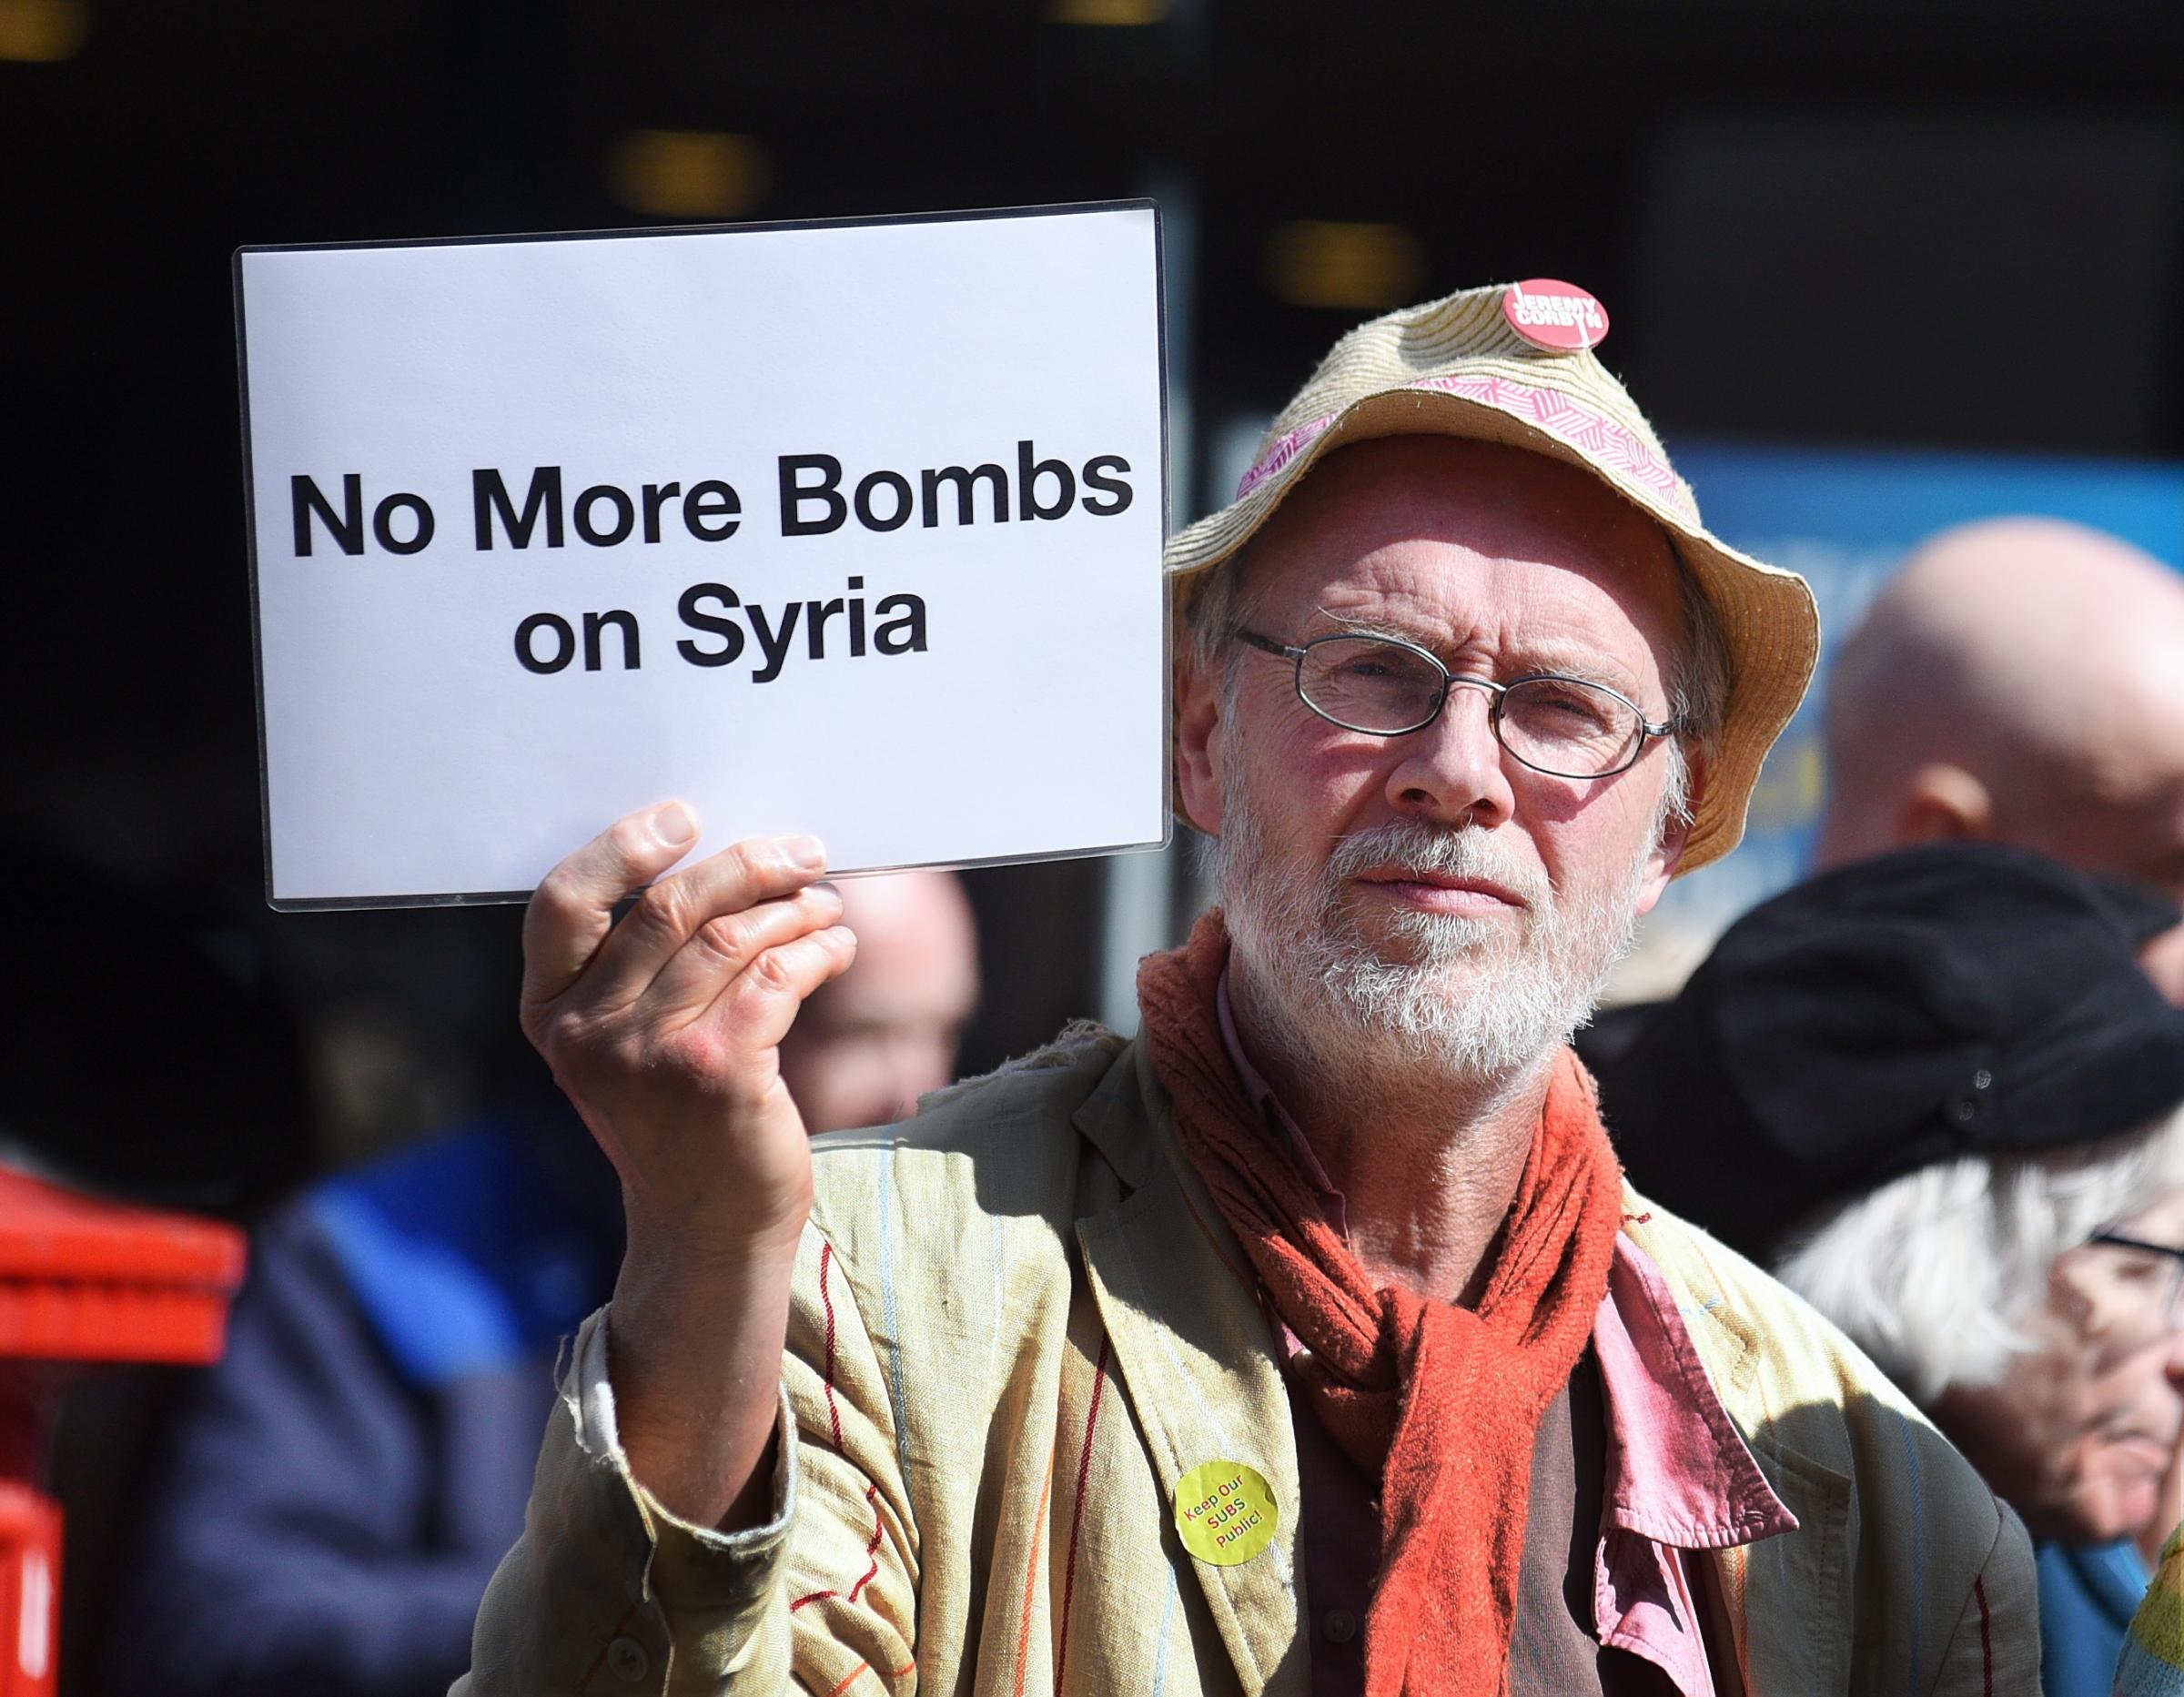 16 photos from Saturday's Stroud Syria vigil